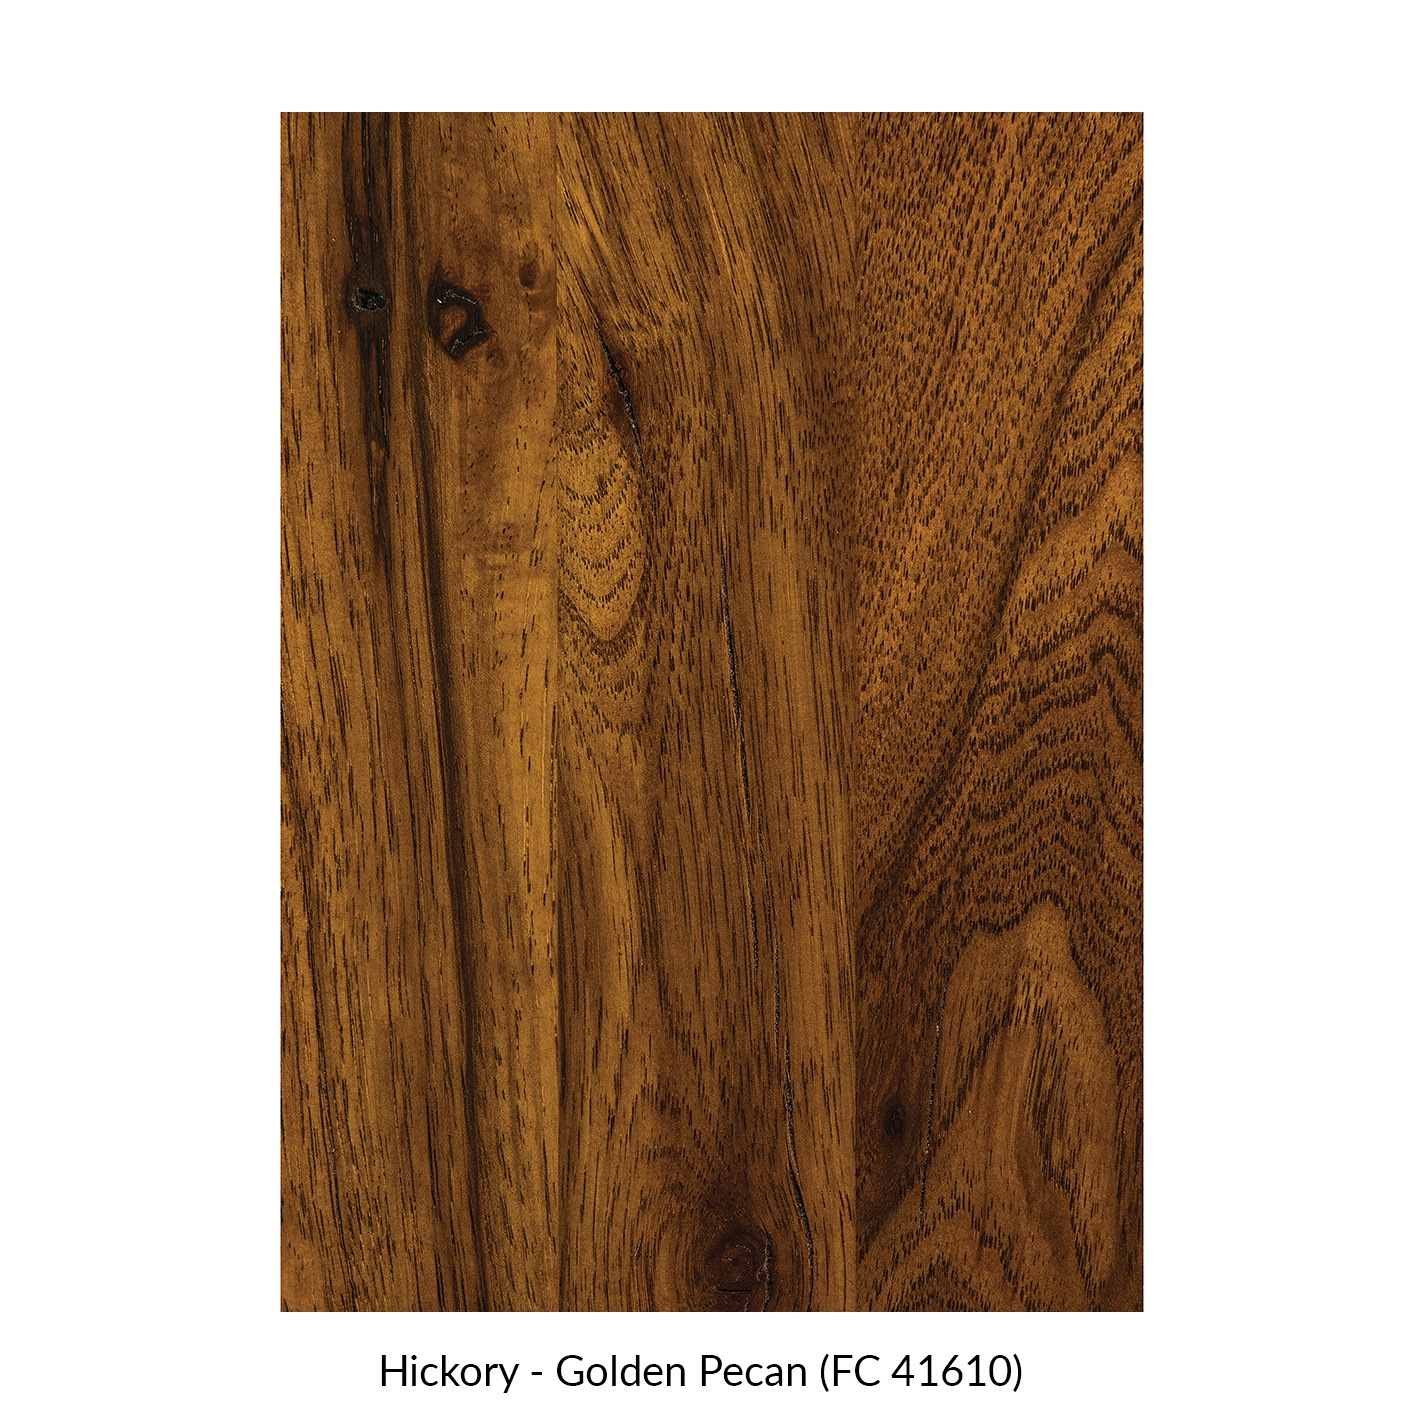 spectrum-hickory-golden-pecan-fc-41610.jpg